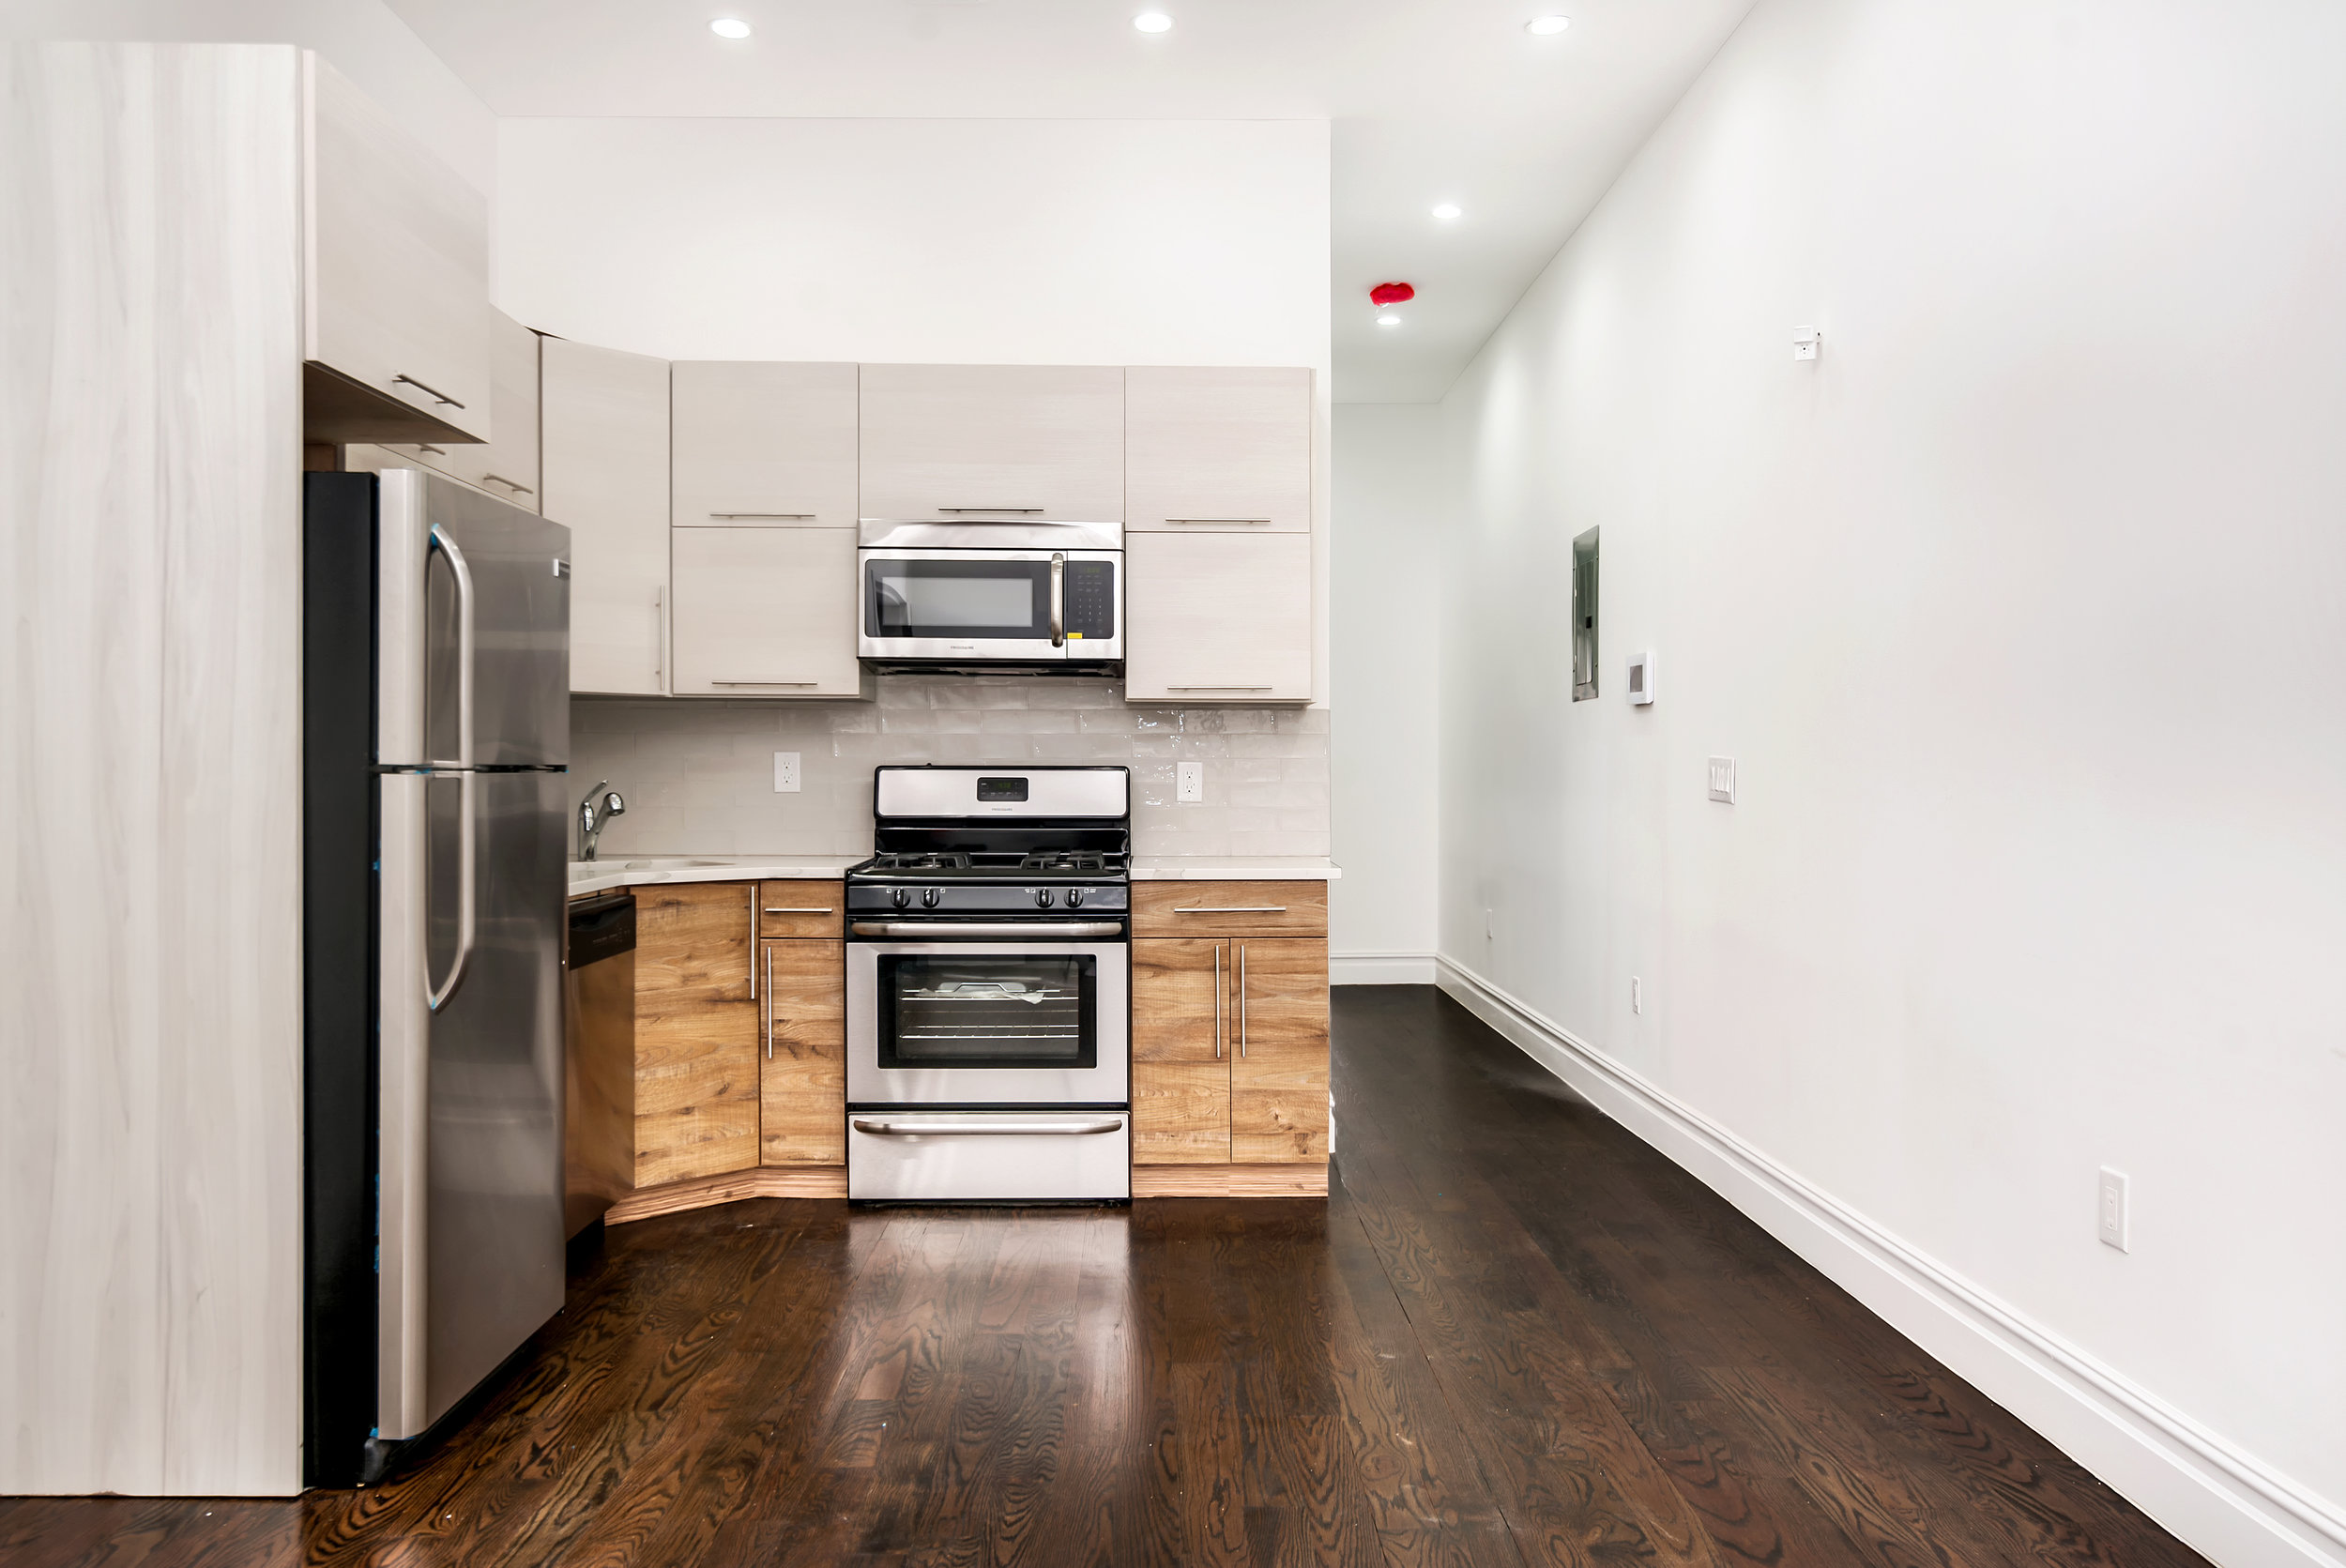 $2,100/month 1.5 BD | 1.0 BA | 995 SF  Bedford Stuyvesant  629A Madison Street